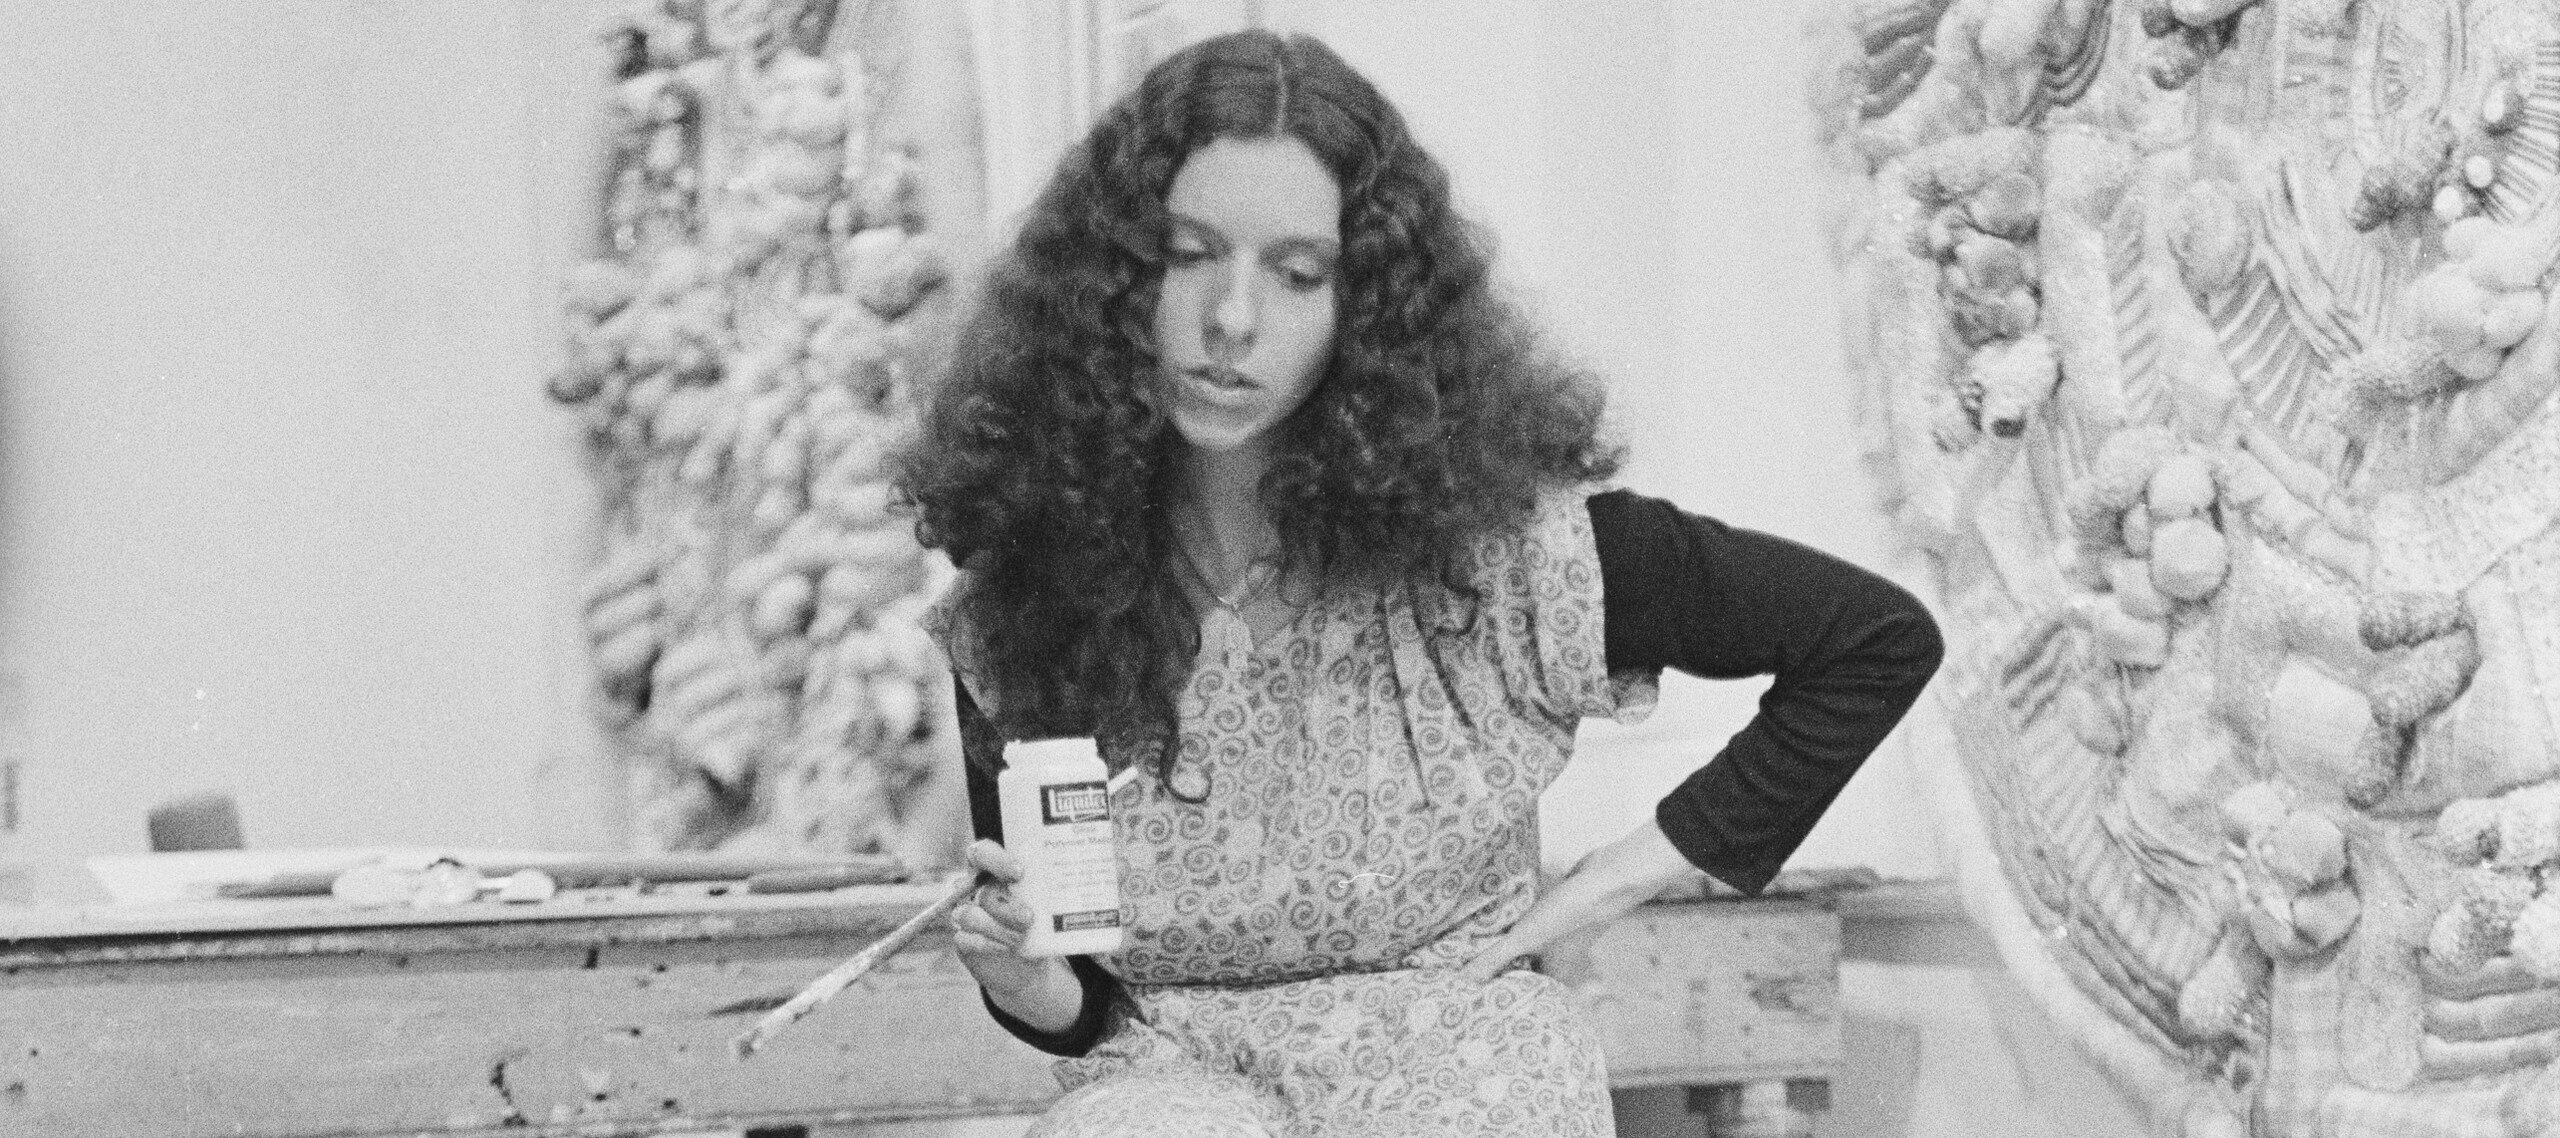 A black-and-white photo of a light-skinned woman sitting on a stool in an artist's studio, looking down at a large circular fabric/textile work. She holds a bottle of gesso and a paint brush.